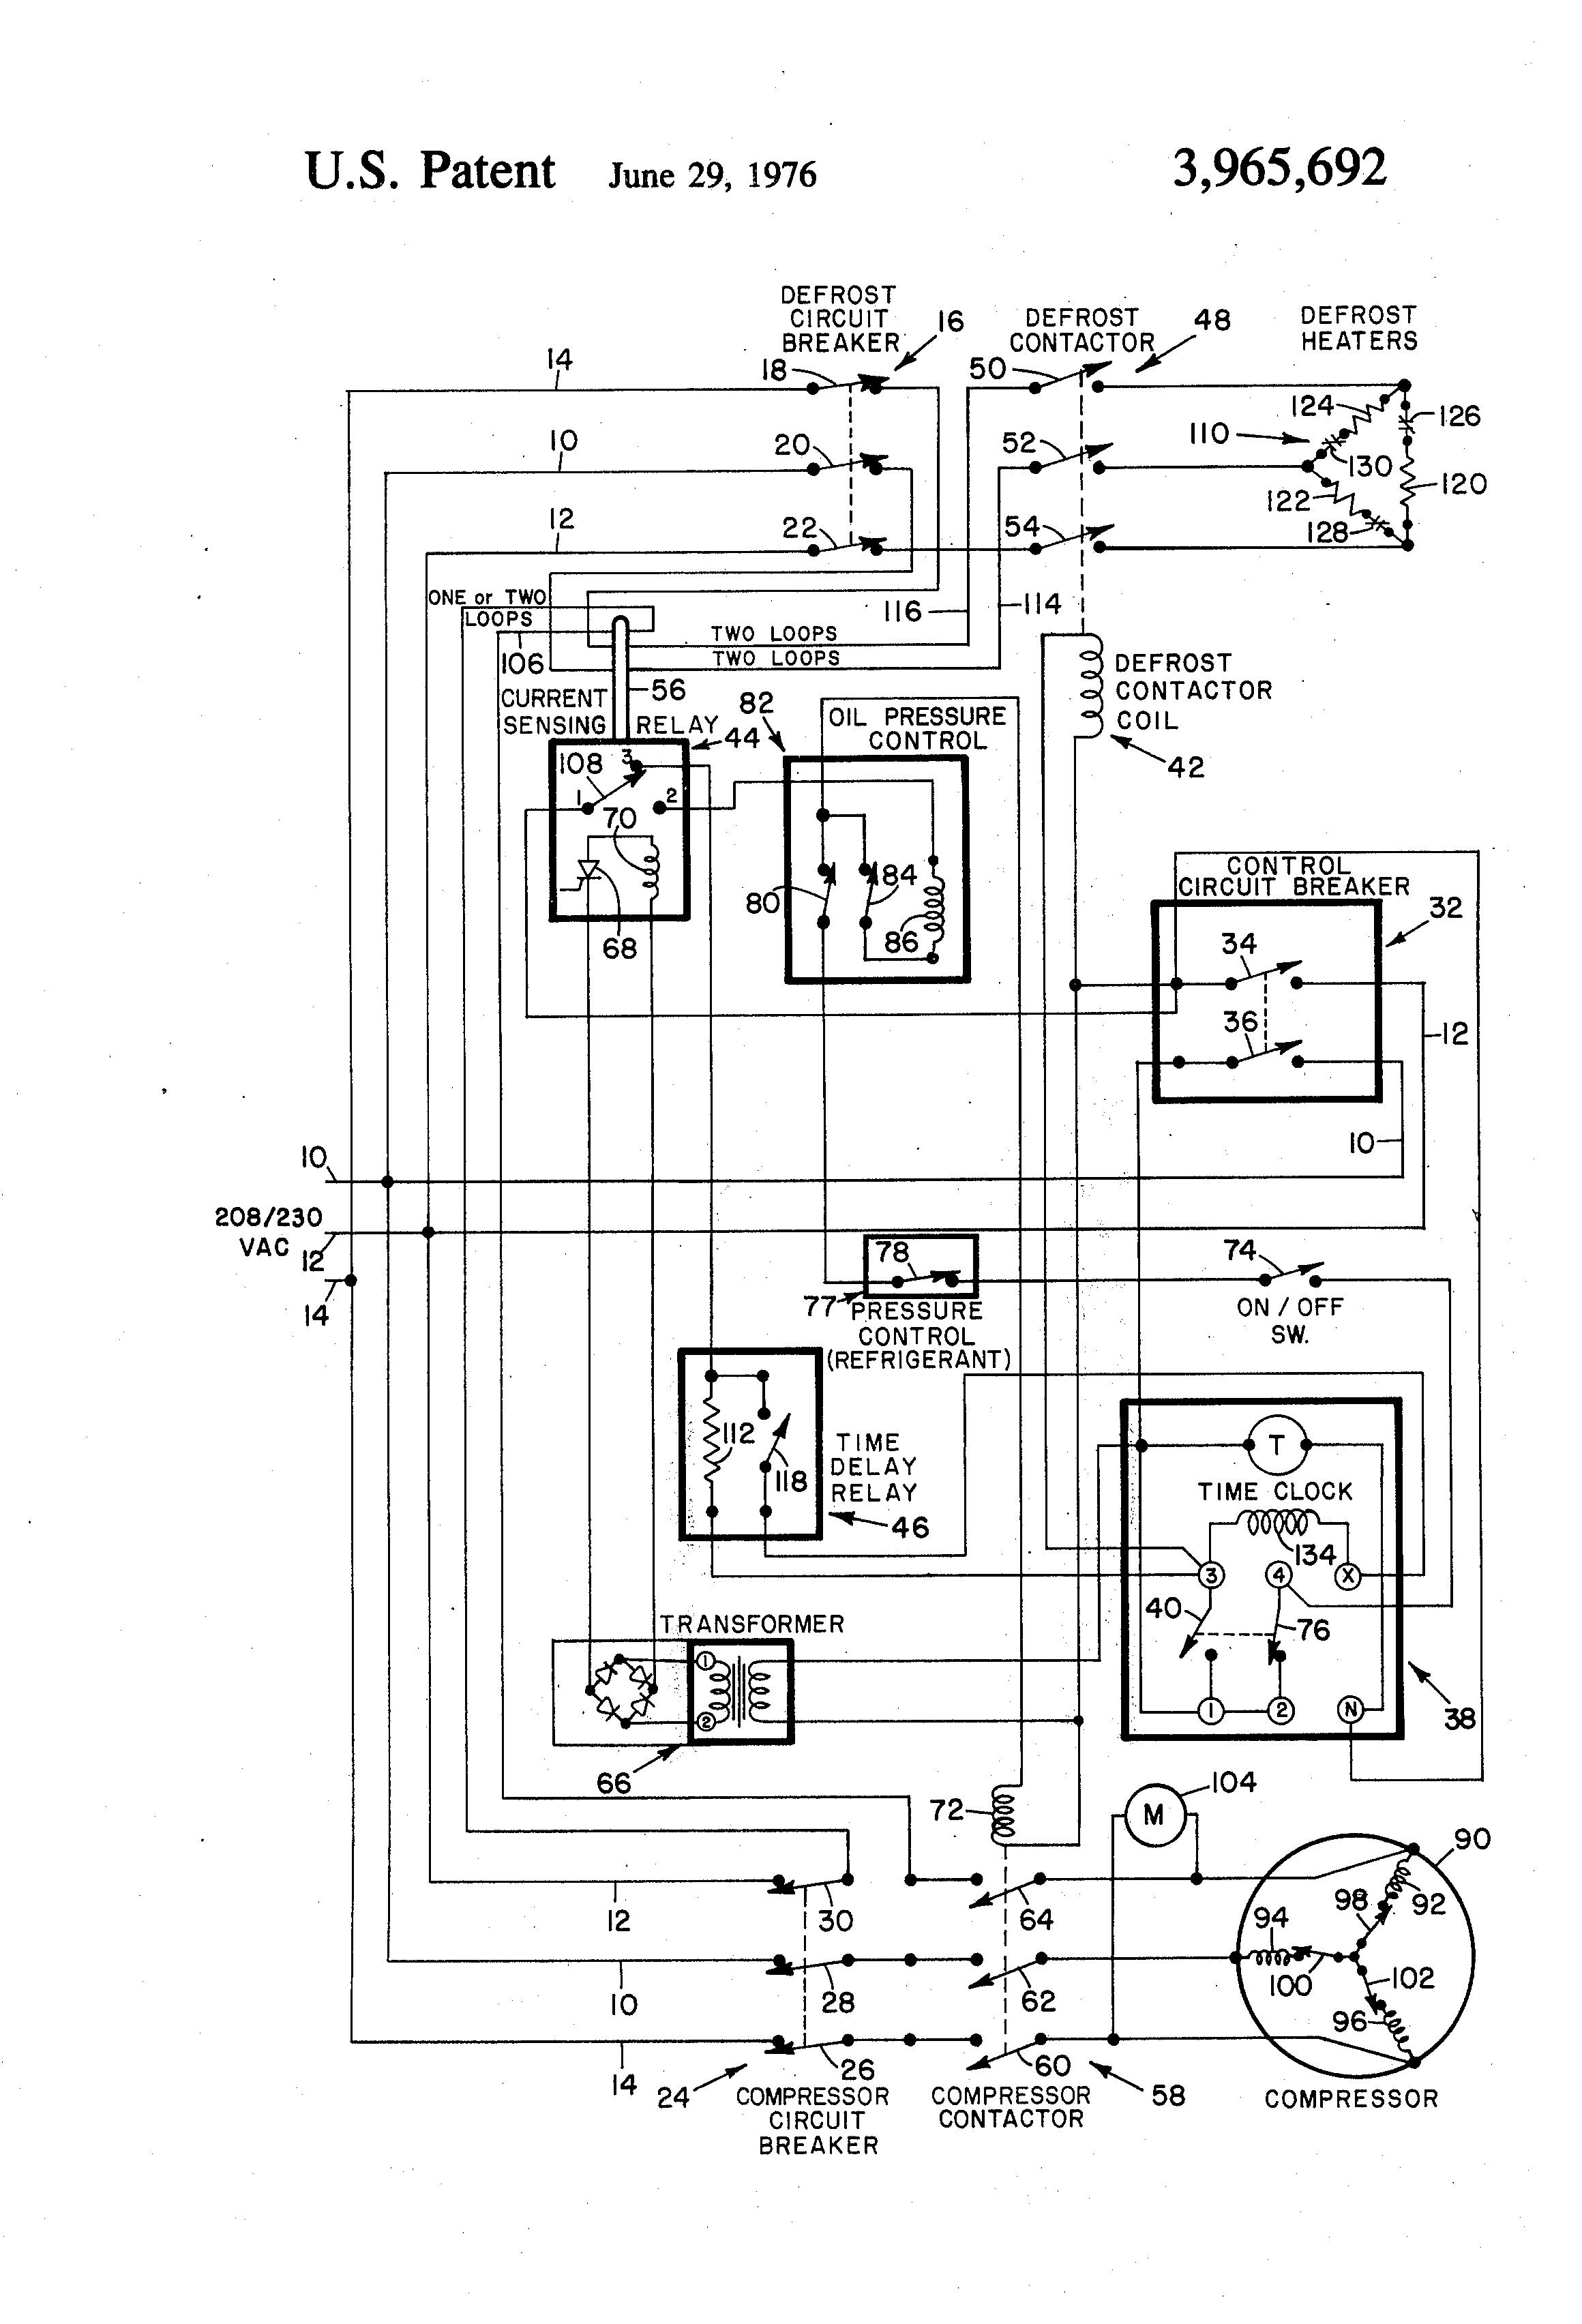 Paragon Defrost Timer 8145 20 Wiring Diagram from patentimages.storage.googleapis.com